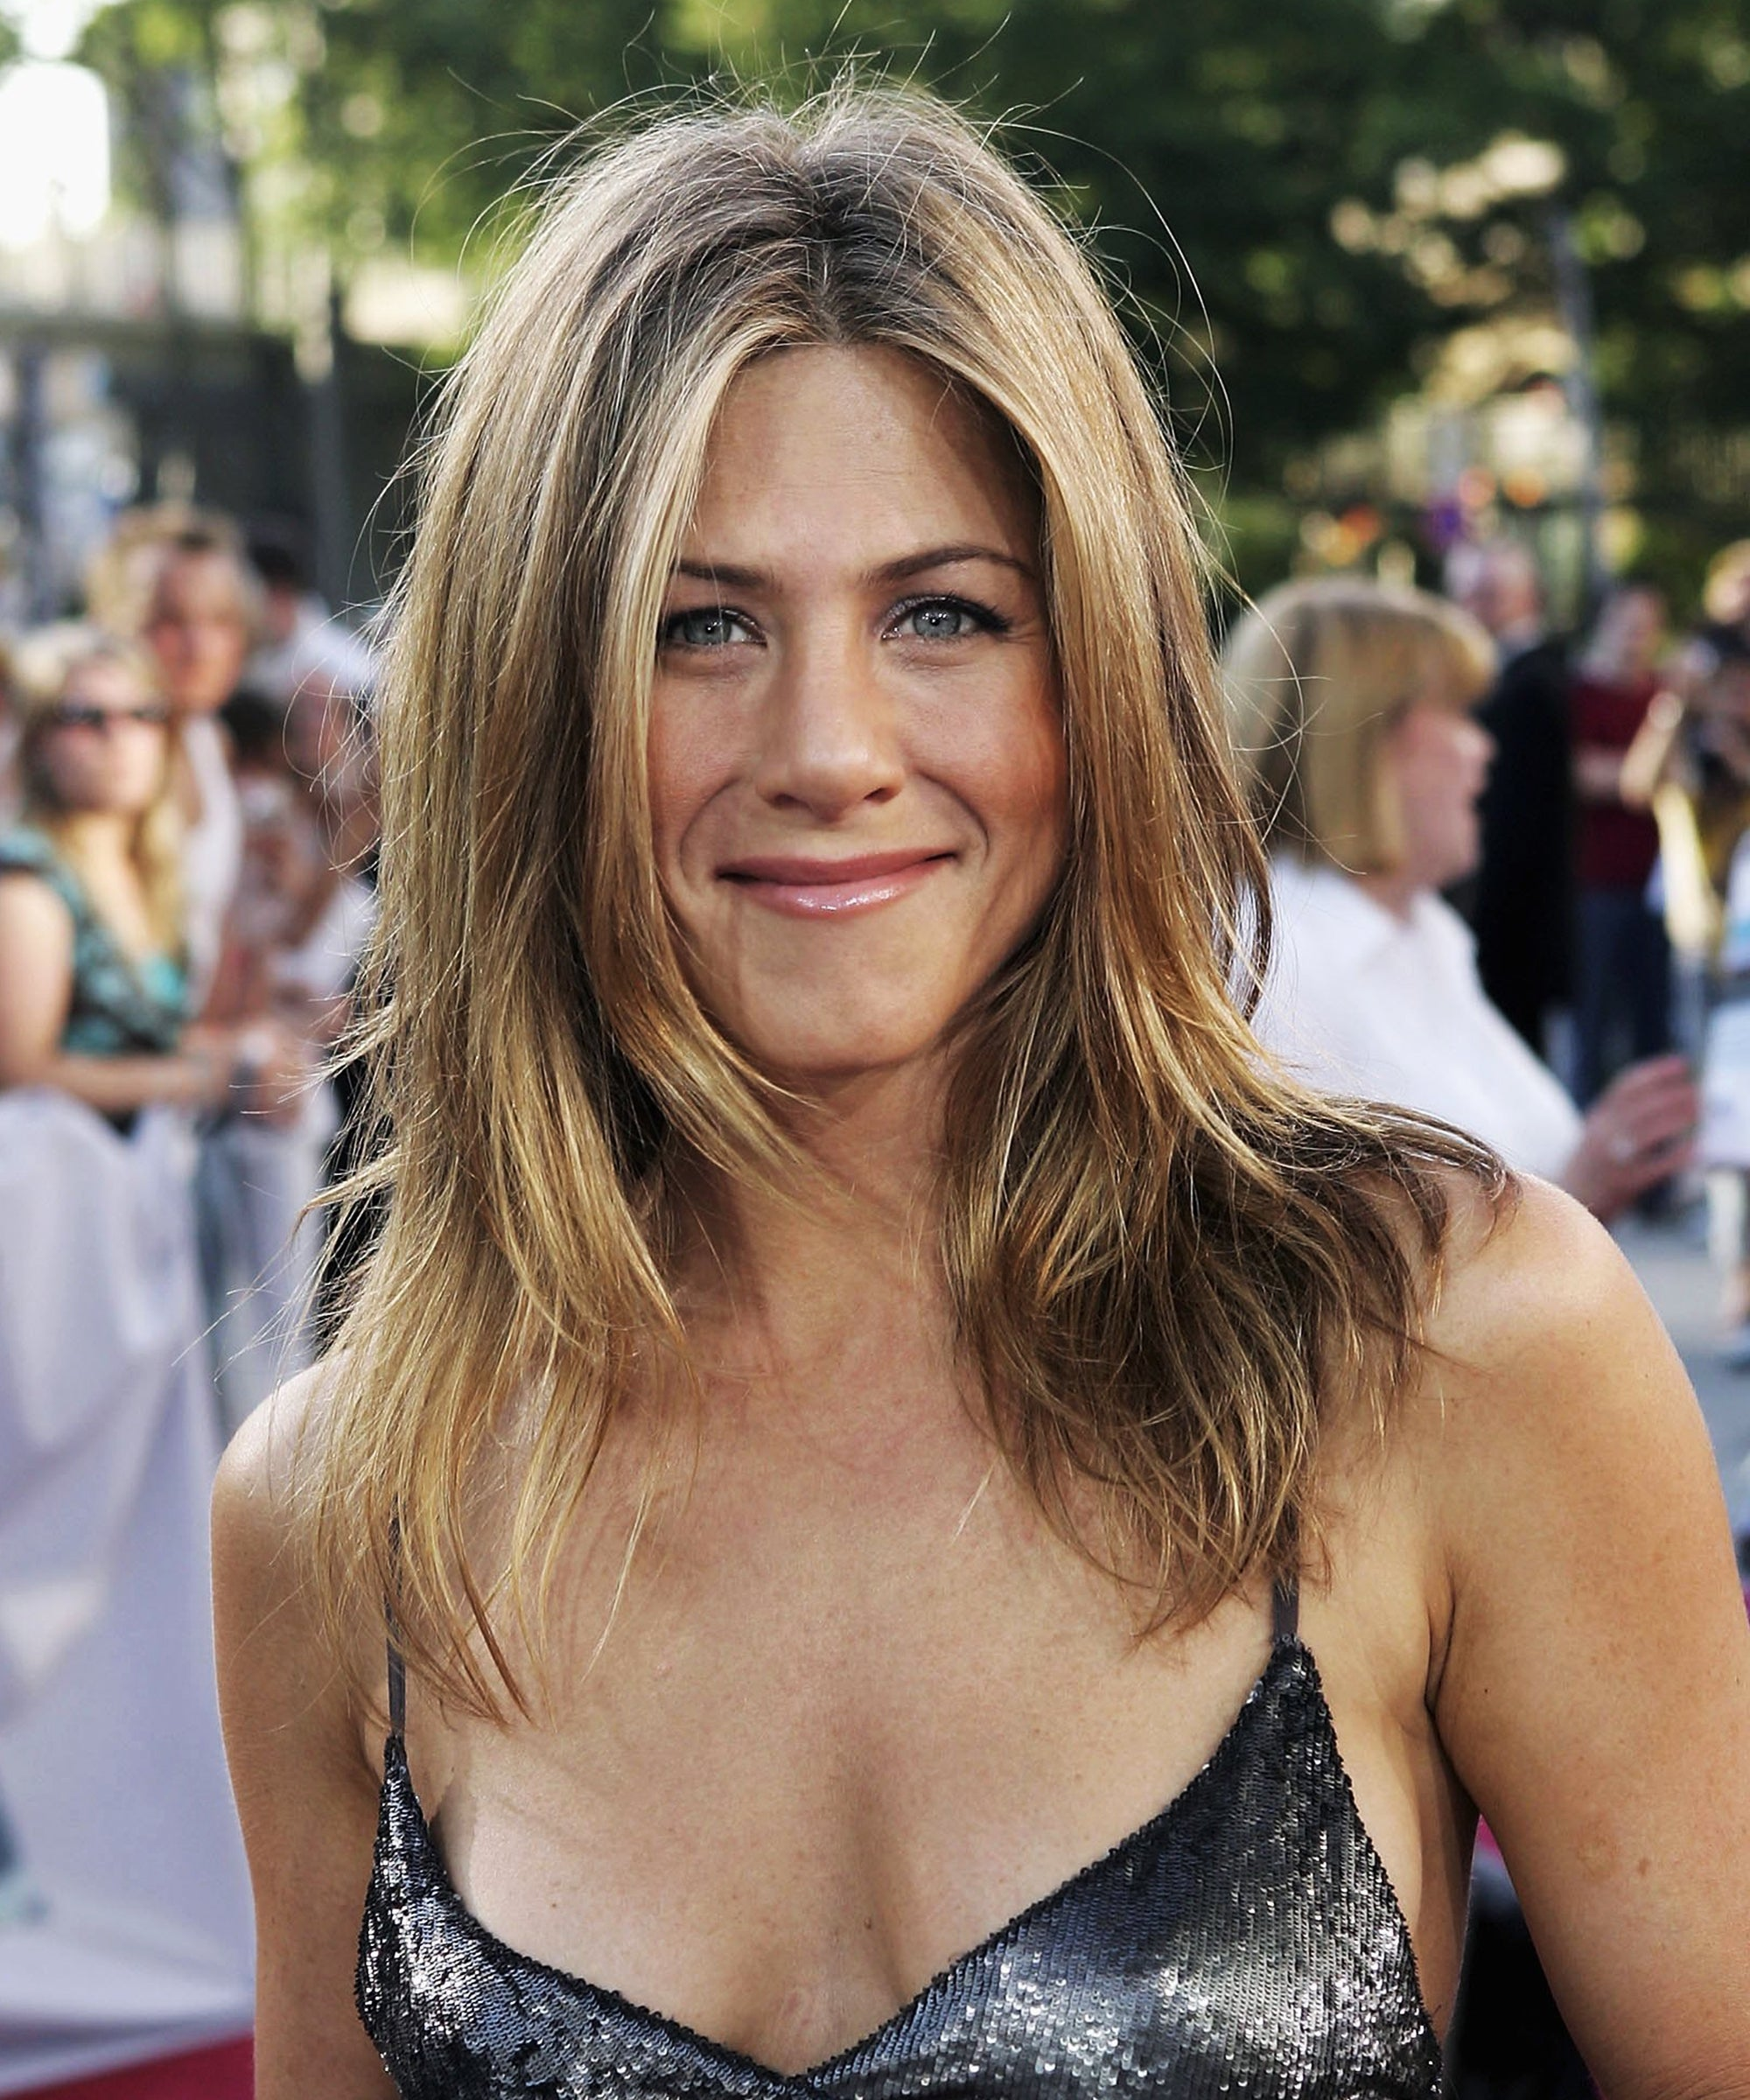 Jennifer Aniston Iconic Hair Cuts From Friends To 12